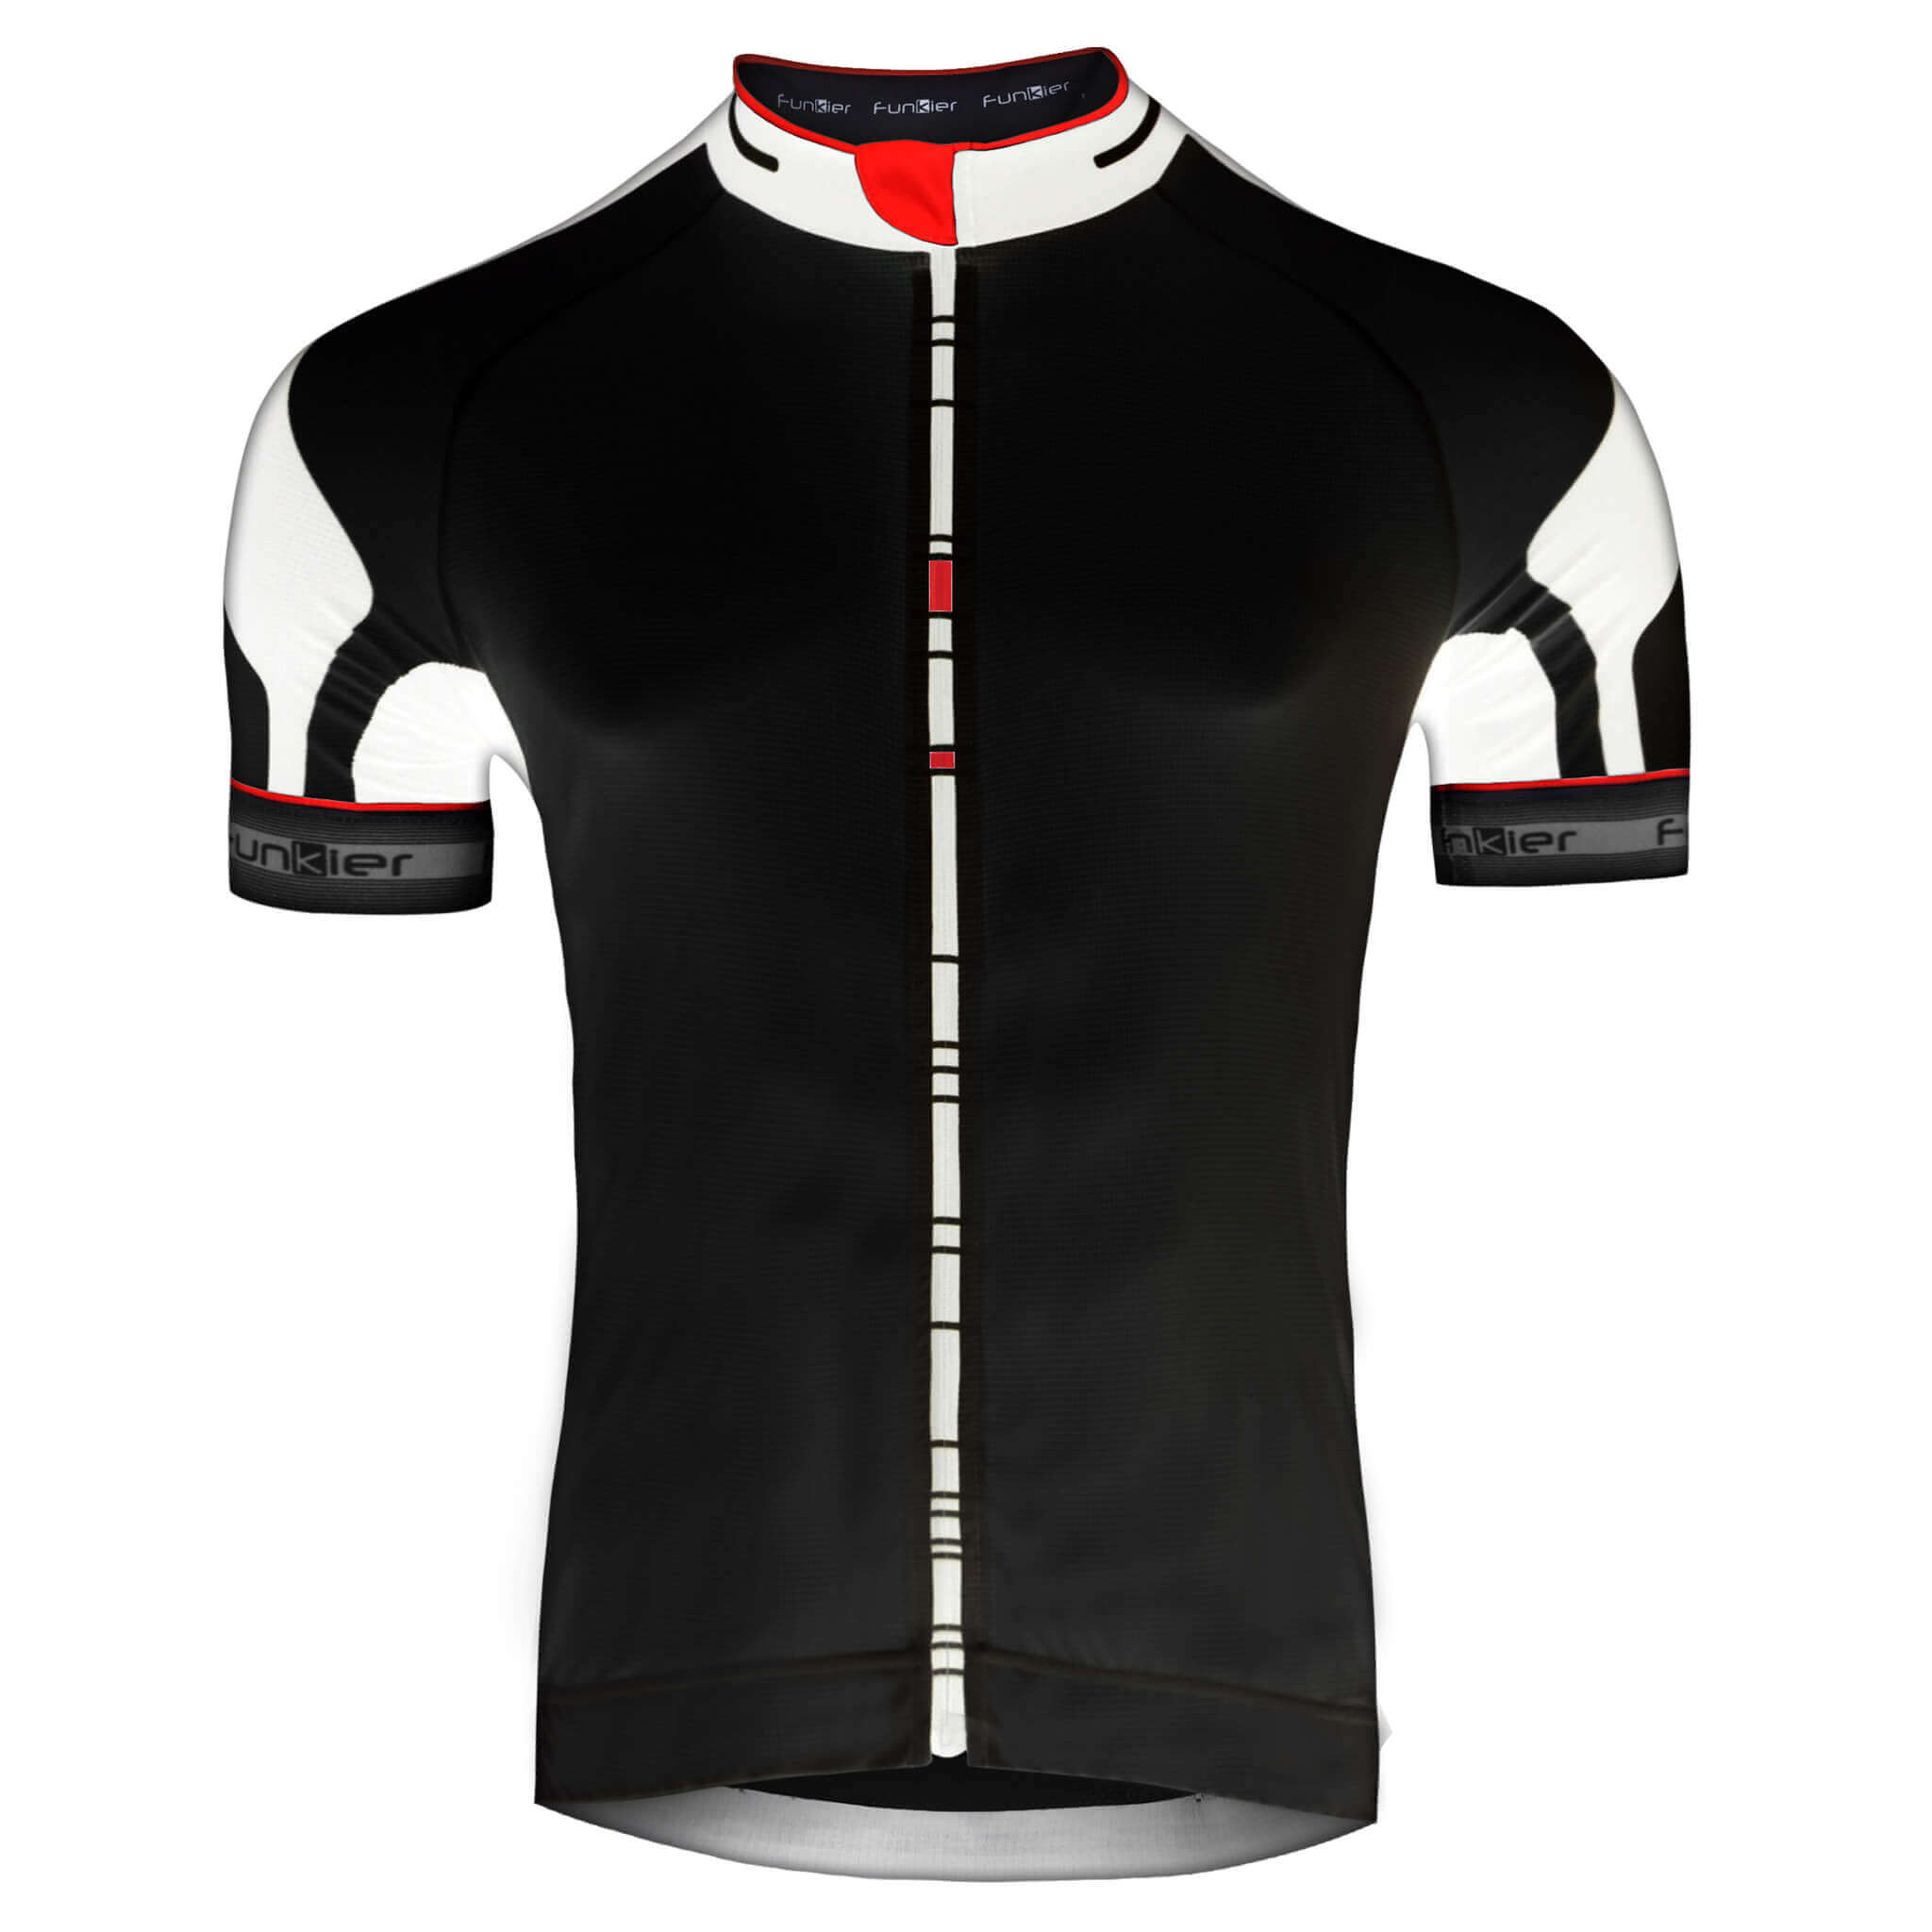 8545a598b Men s Short Sleeve Jerseys J-771 - Funkier Bike